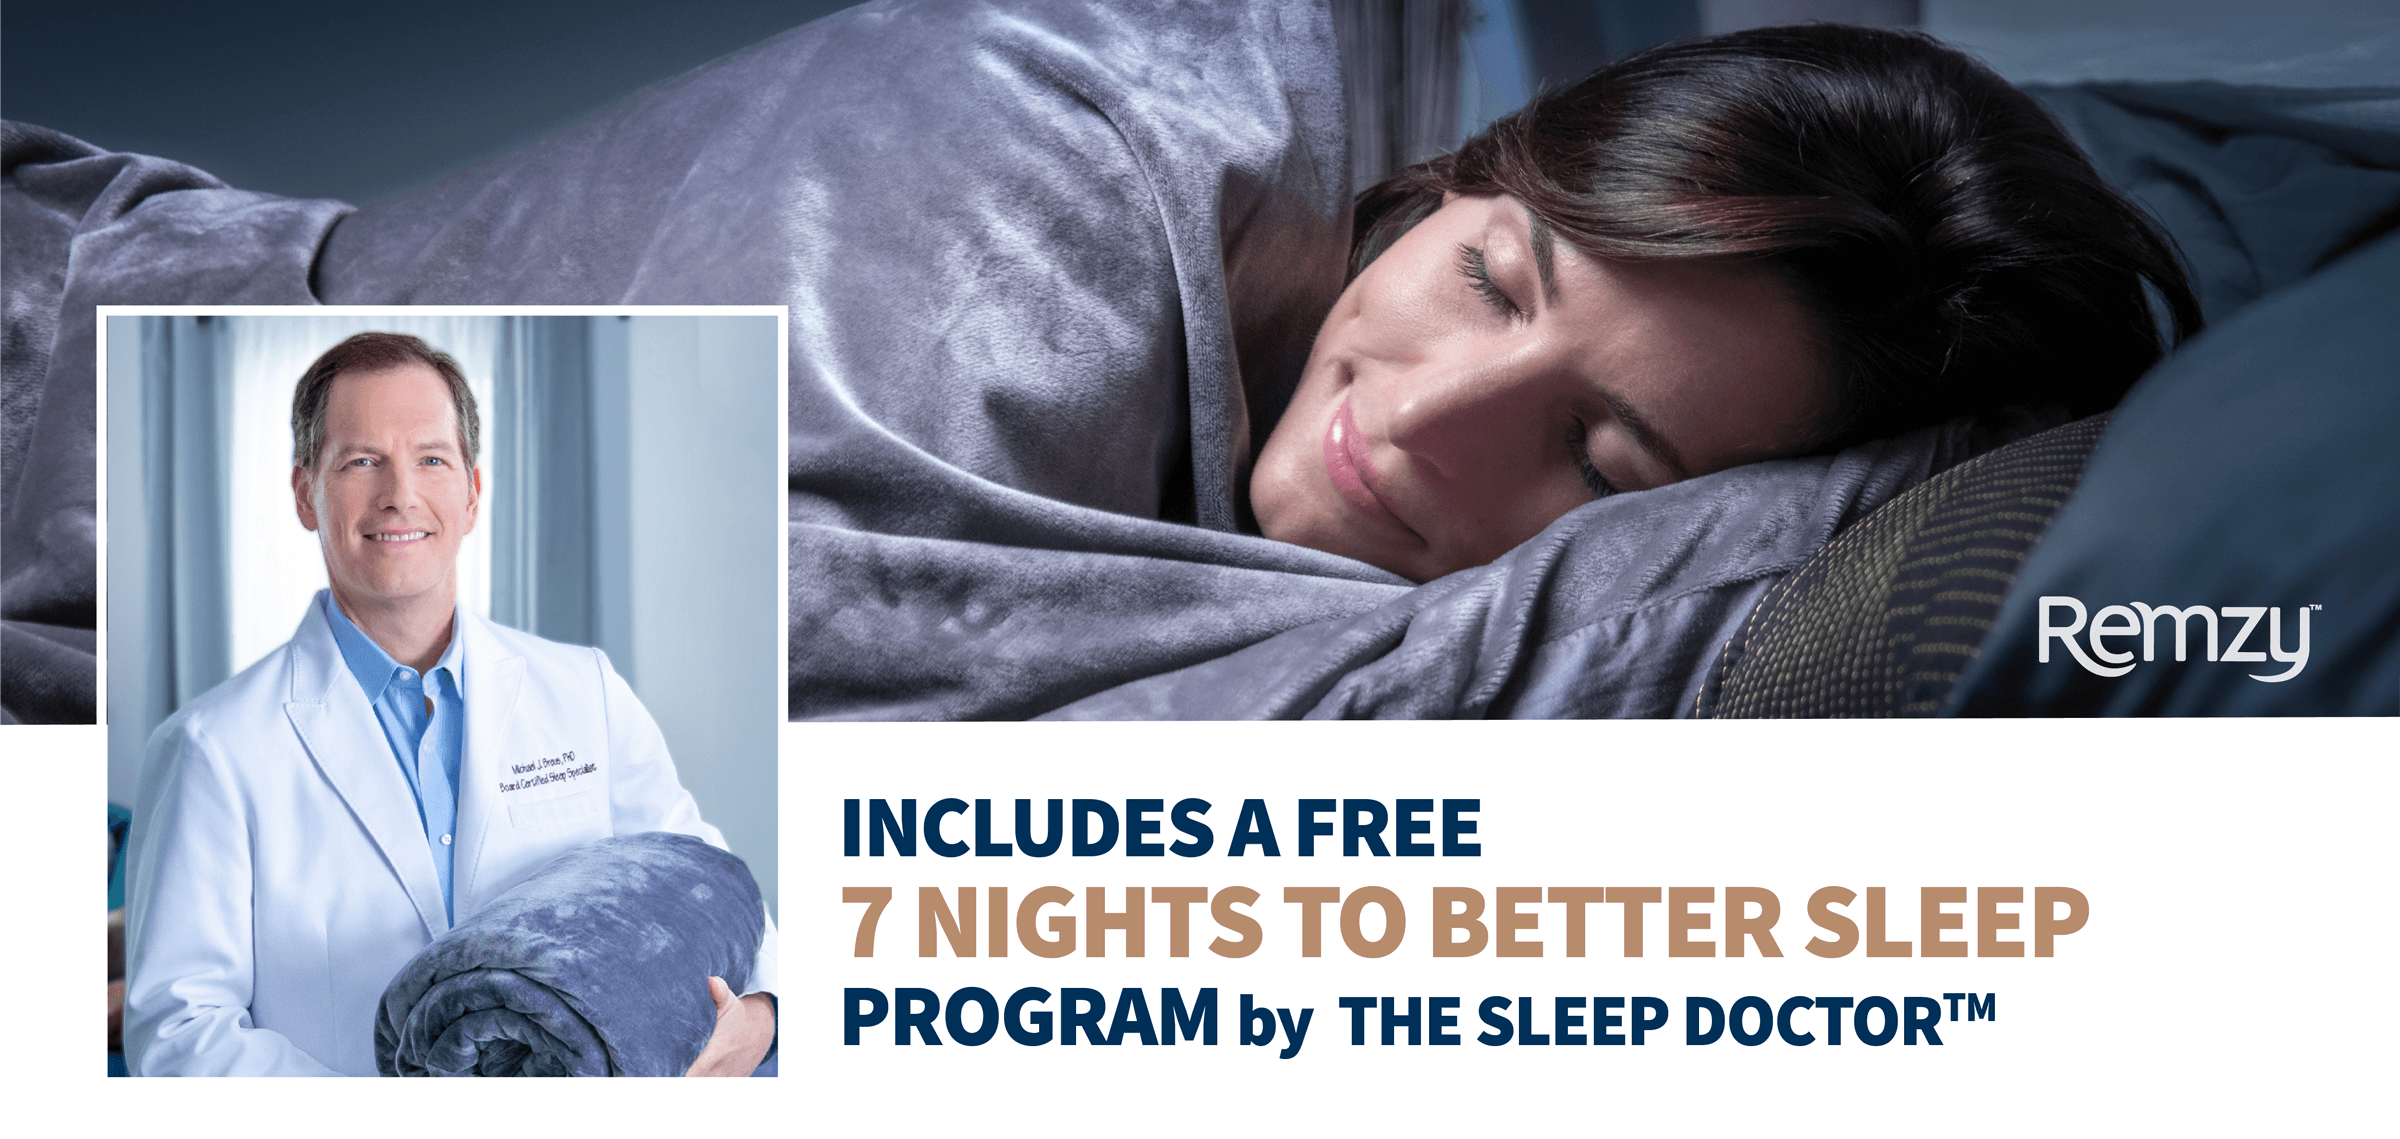 Includes a Free 7 Nights to Better Sleep Program by The Sleep Doctor™